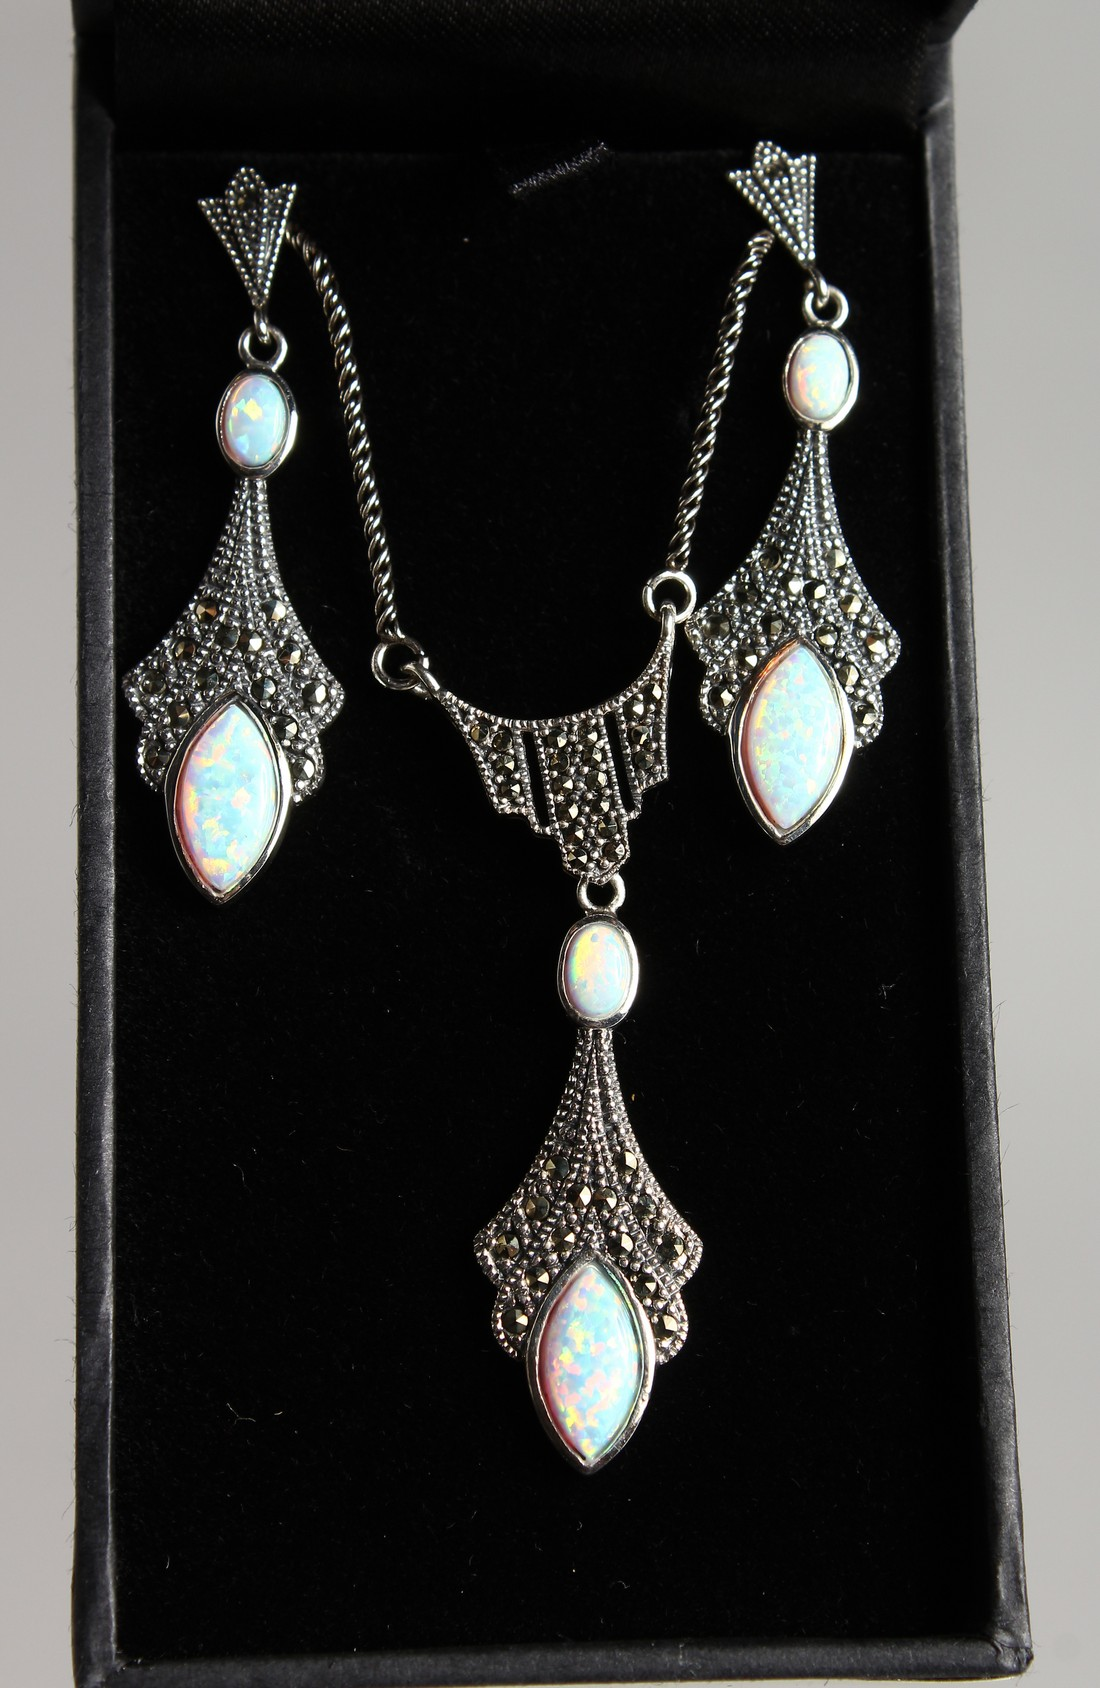 A SILVER MARCASITE AND ONYX DECO STYLE NECKLACE